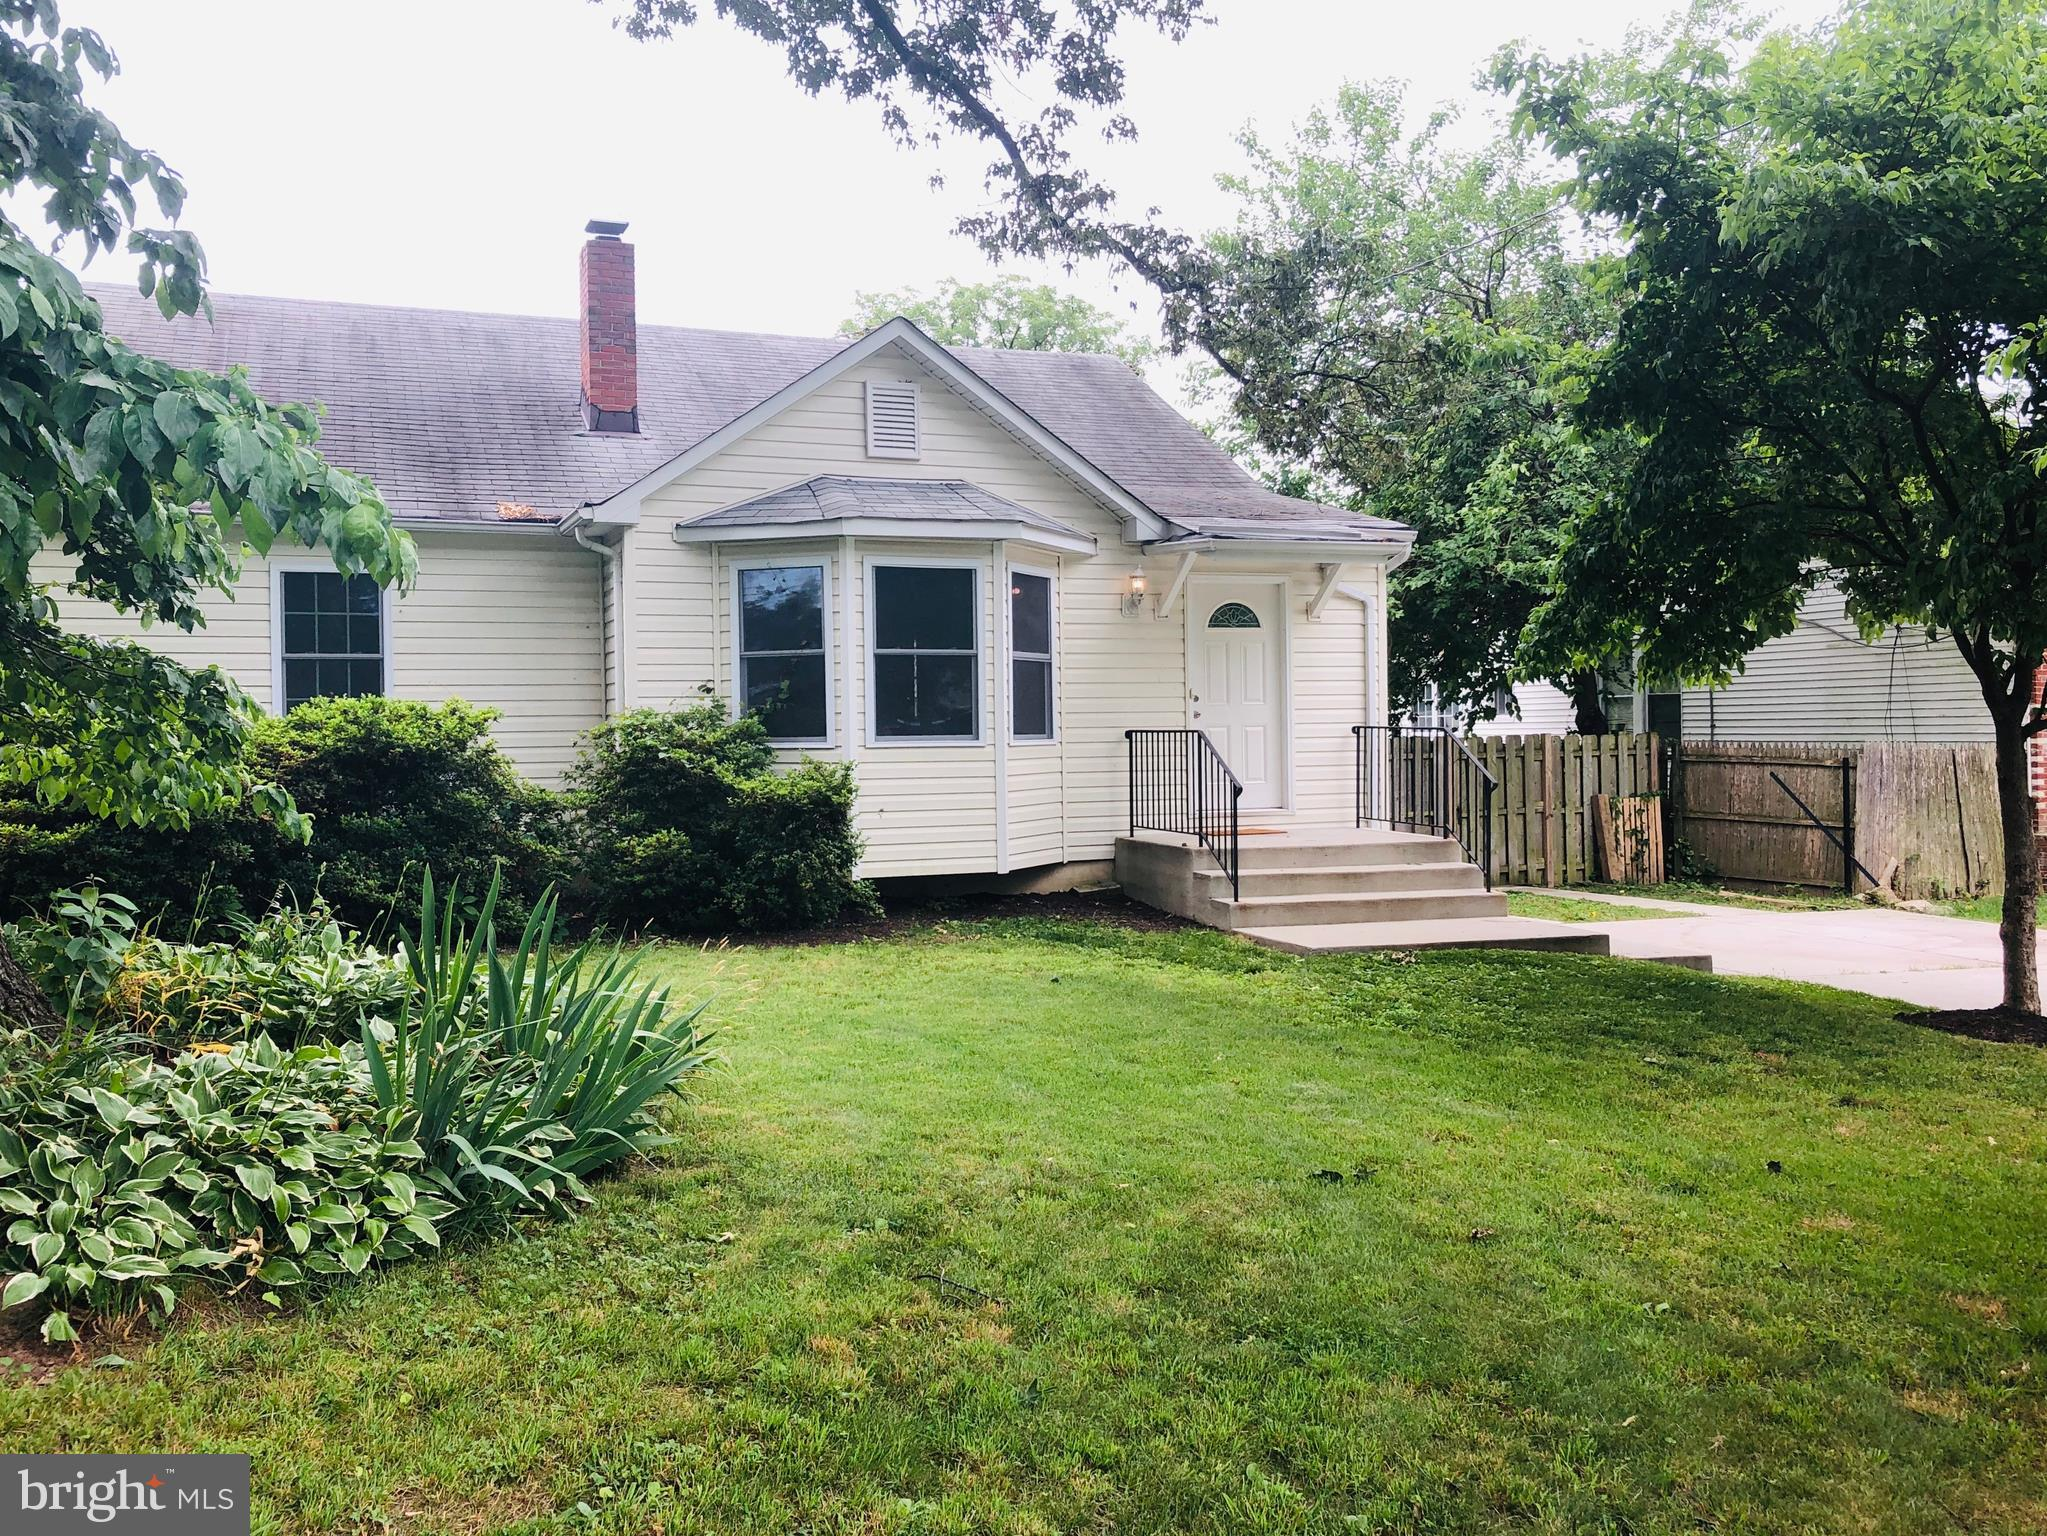 11009 QUEEN ANNE AVENUE, BELTSVILLE, MD 20705